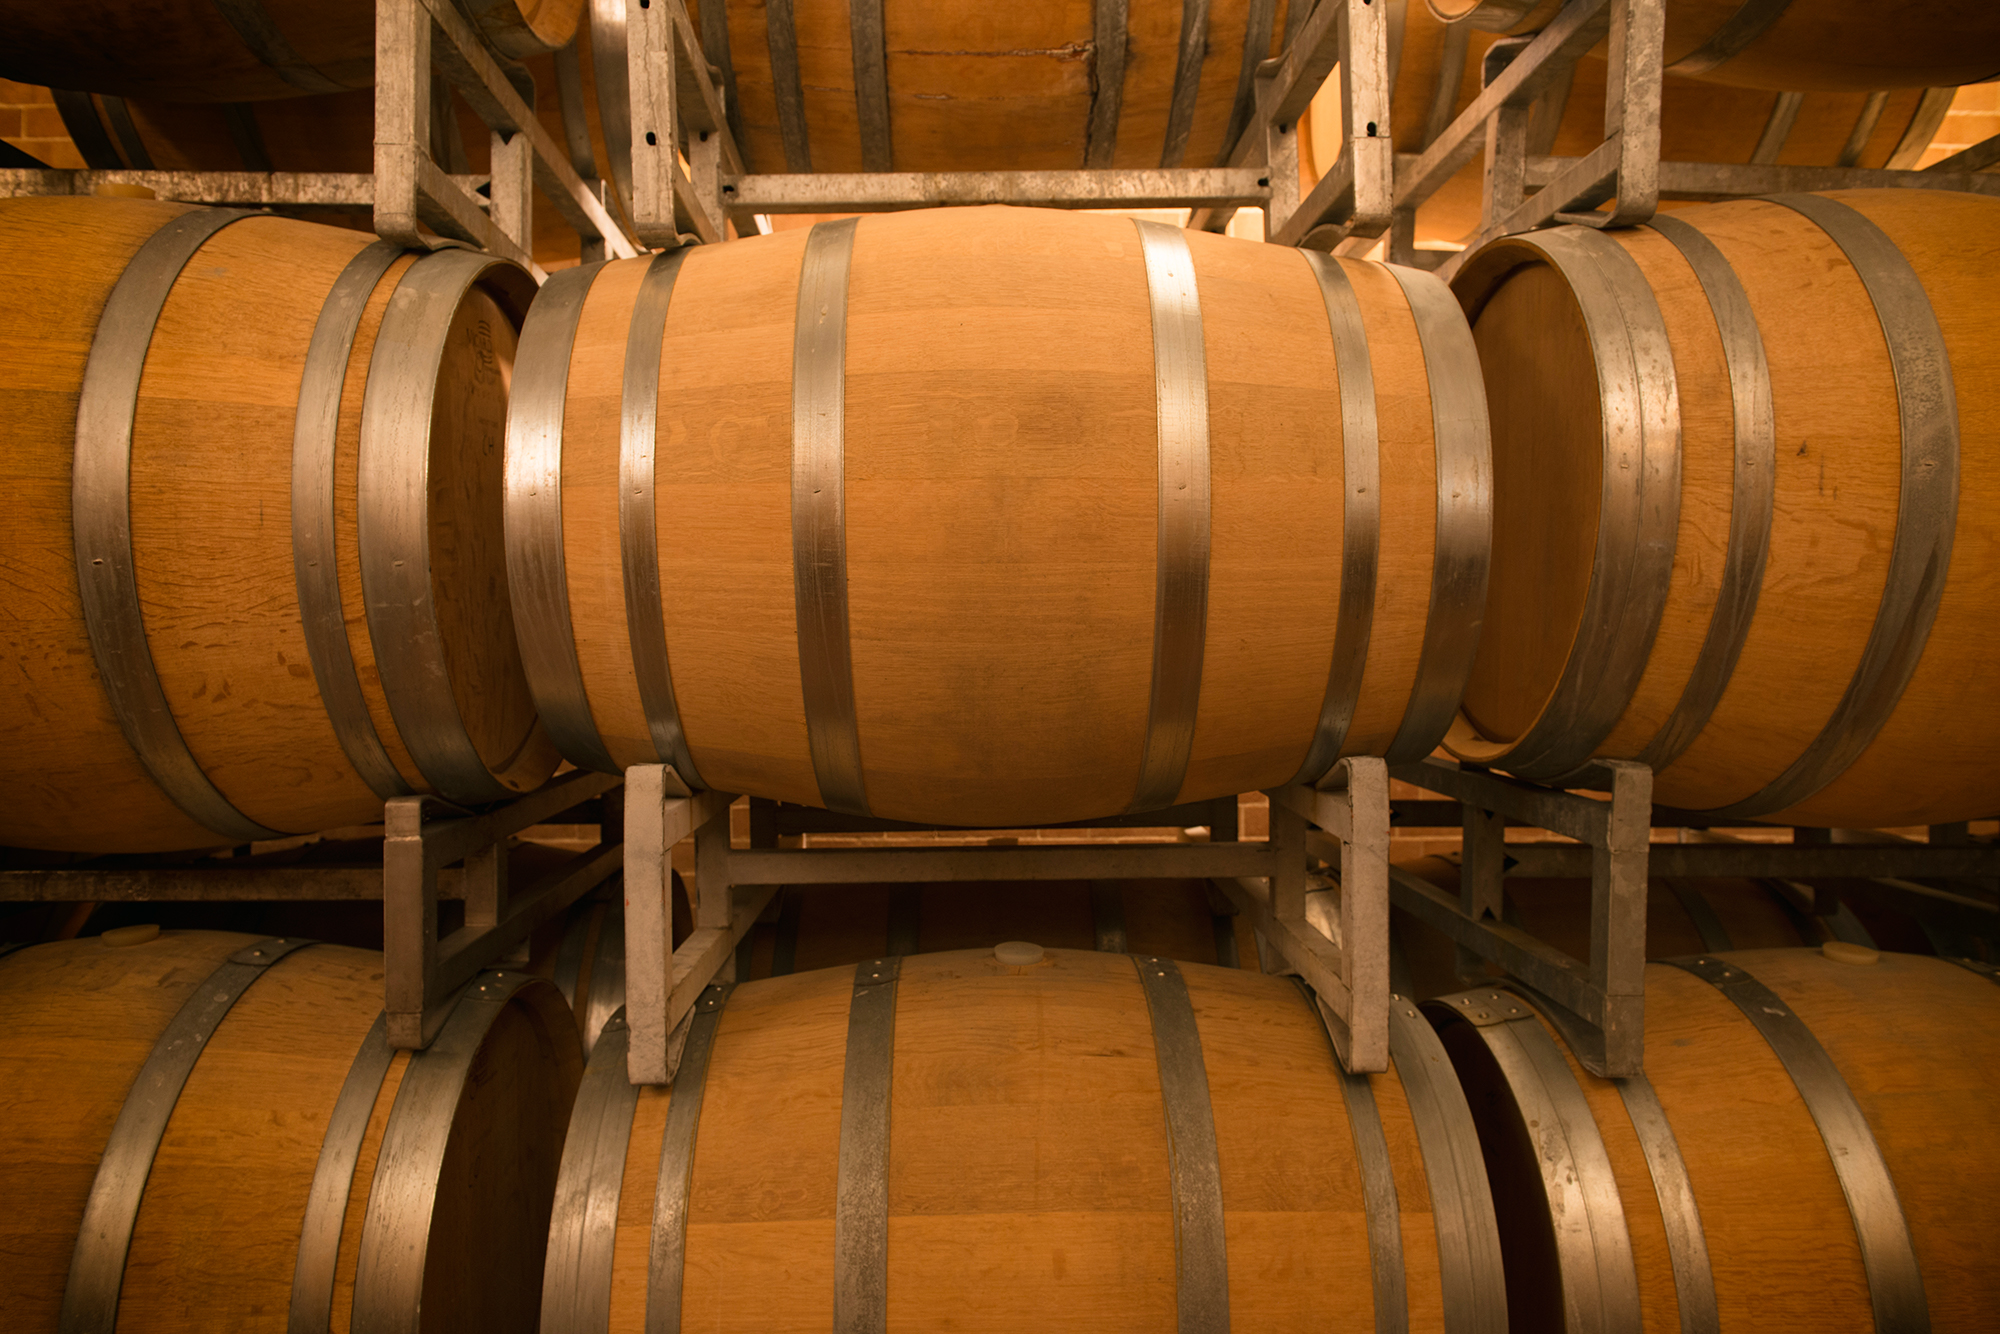 The kins of wines: Barolo and Barbaresco